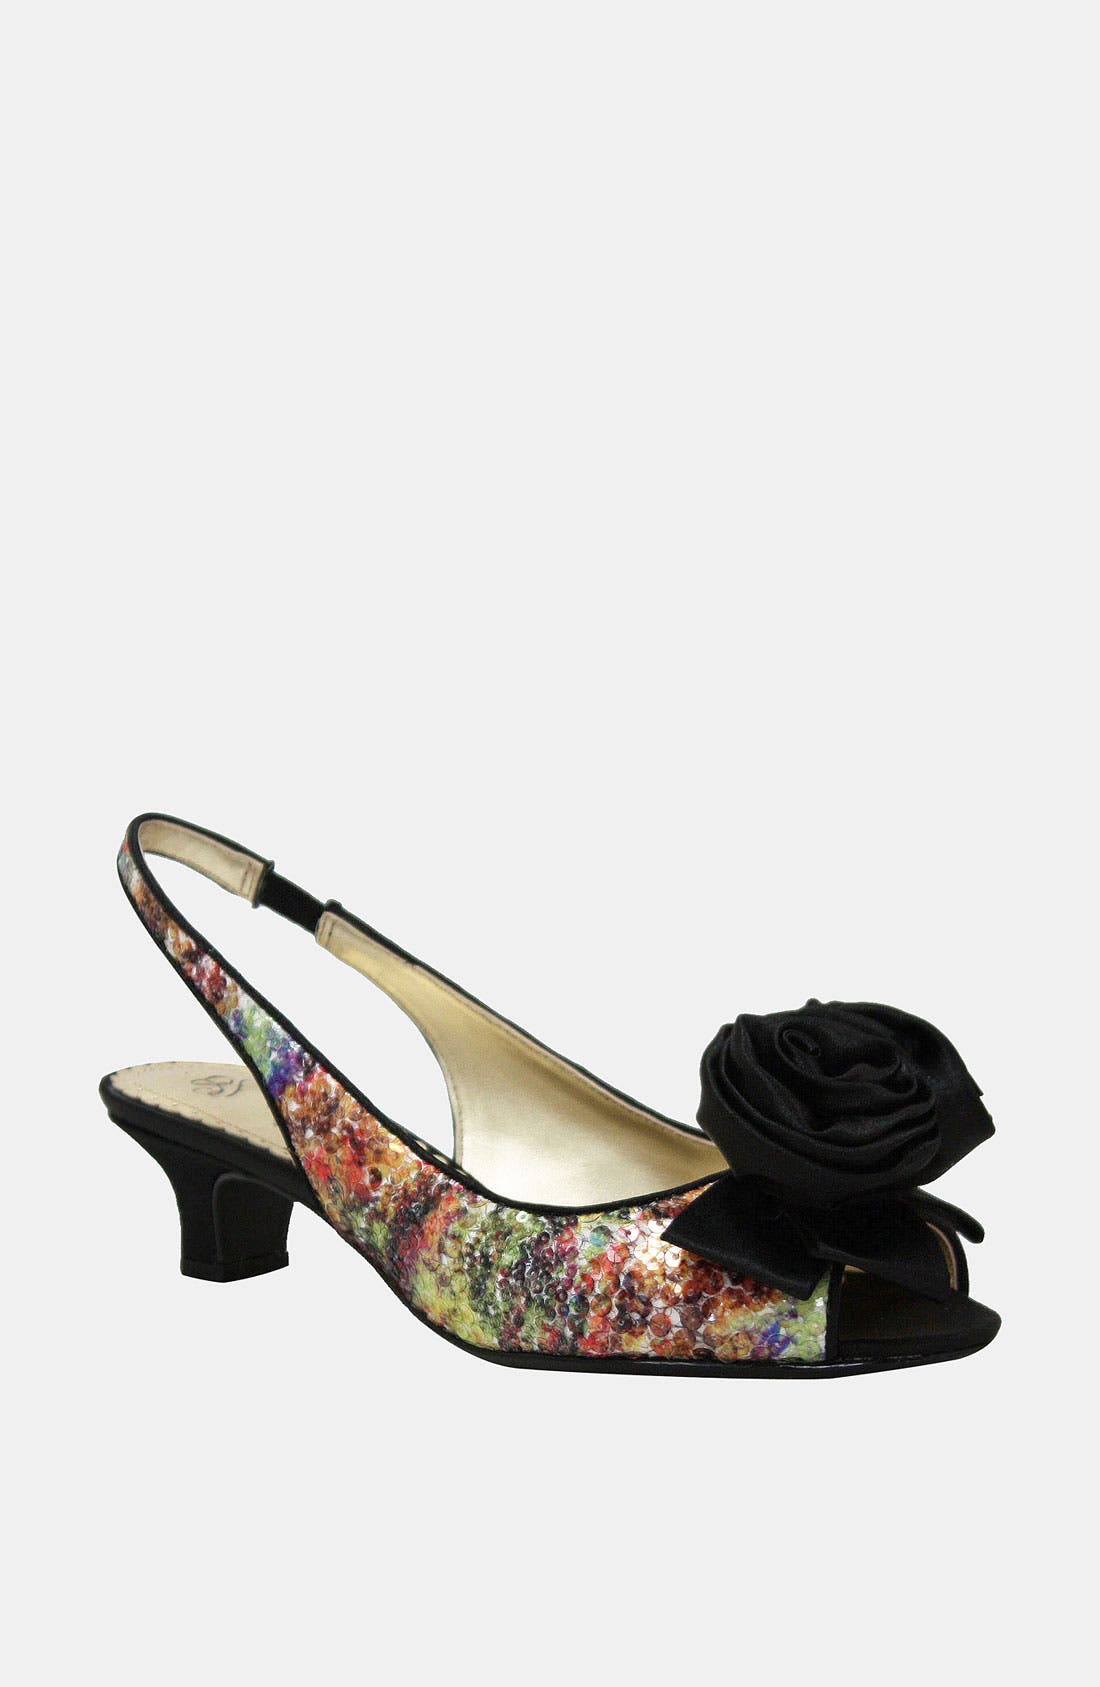 Alternate Image 1 Selected - J. Reneé 'Accent' Slingback Sandal